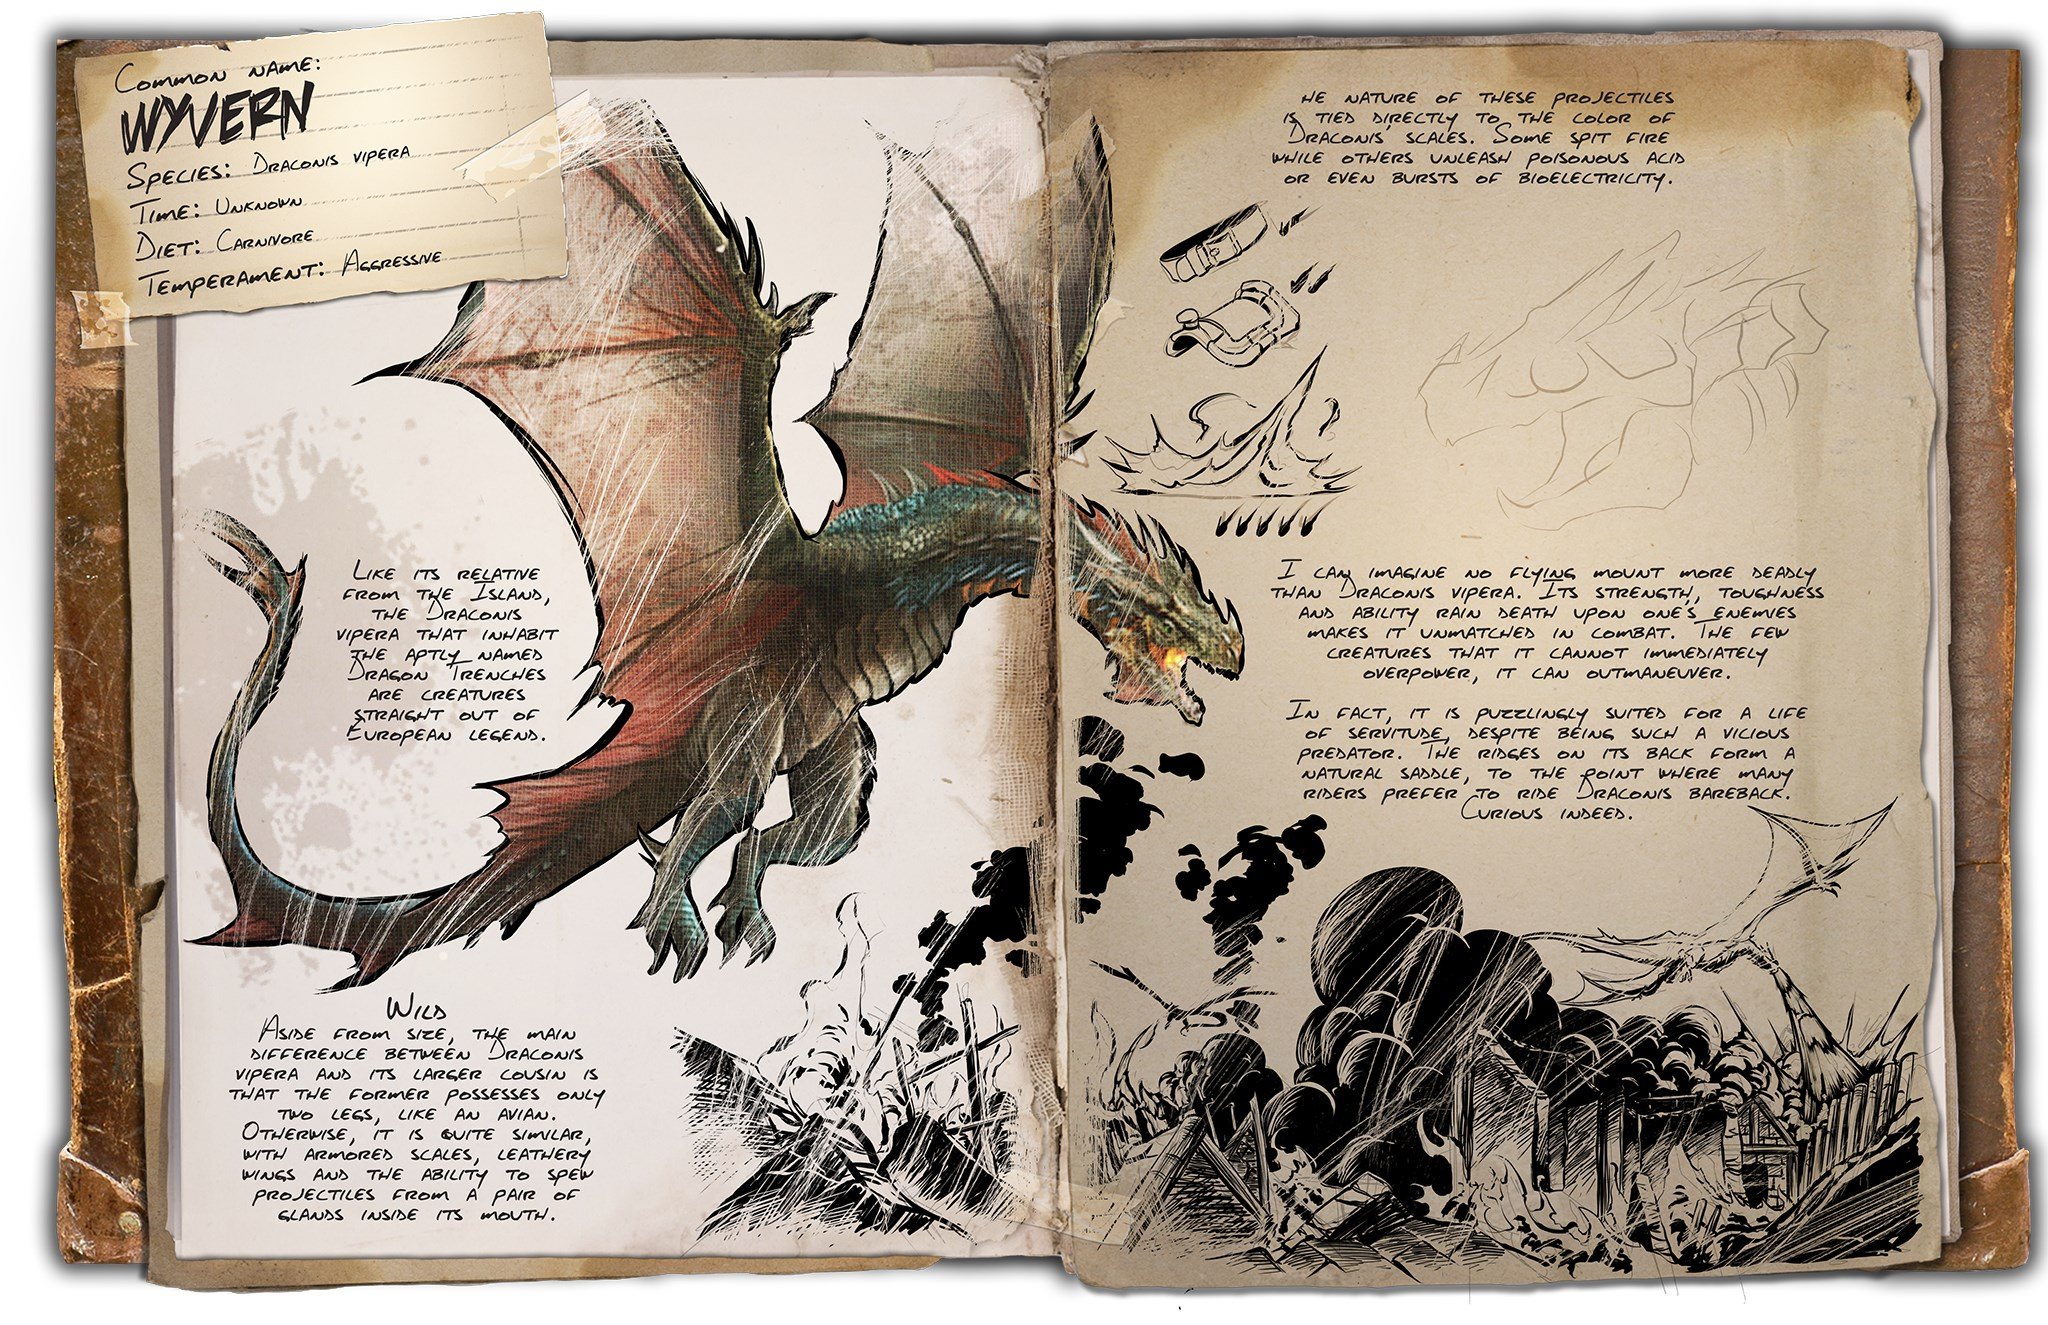 Wyvern scorched earth wiki ark survival evolved forum und dossierwyverng malvernweather Image collections